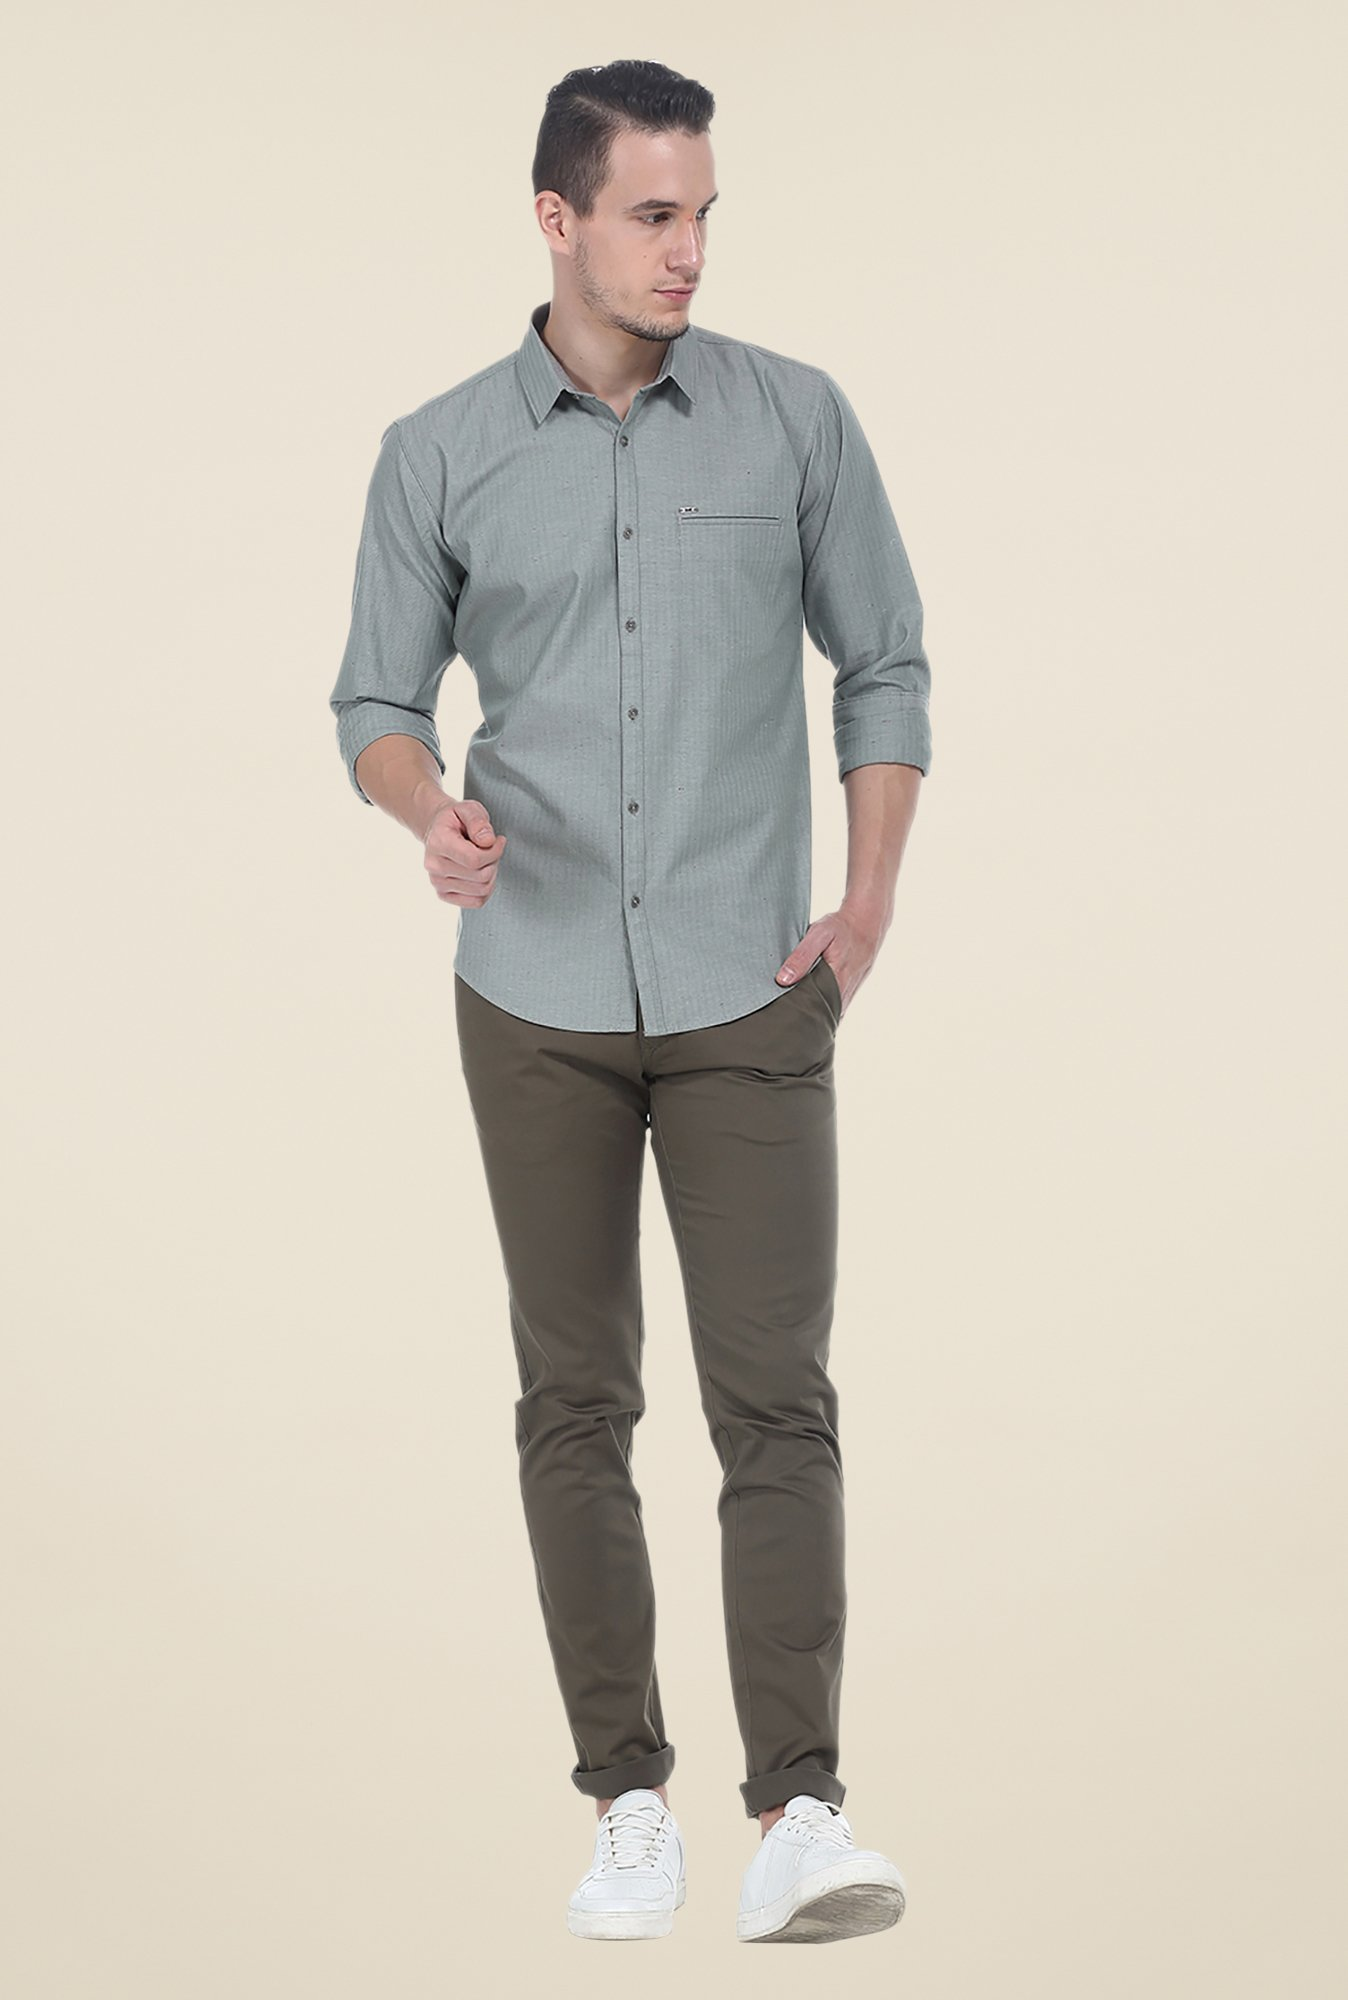 Basics Grey Striped Shirt